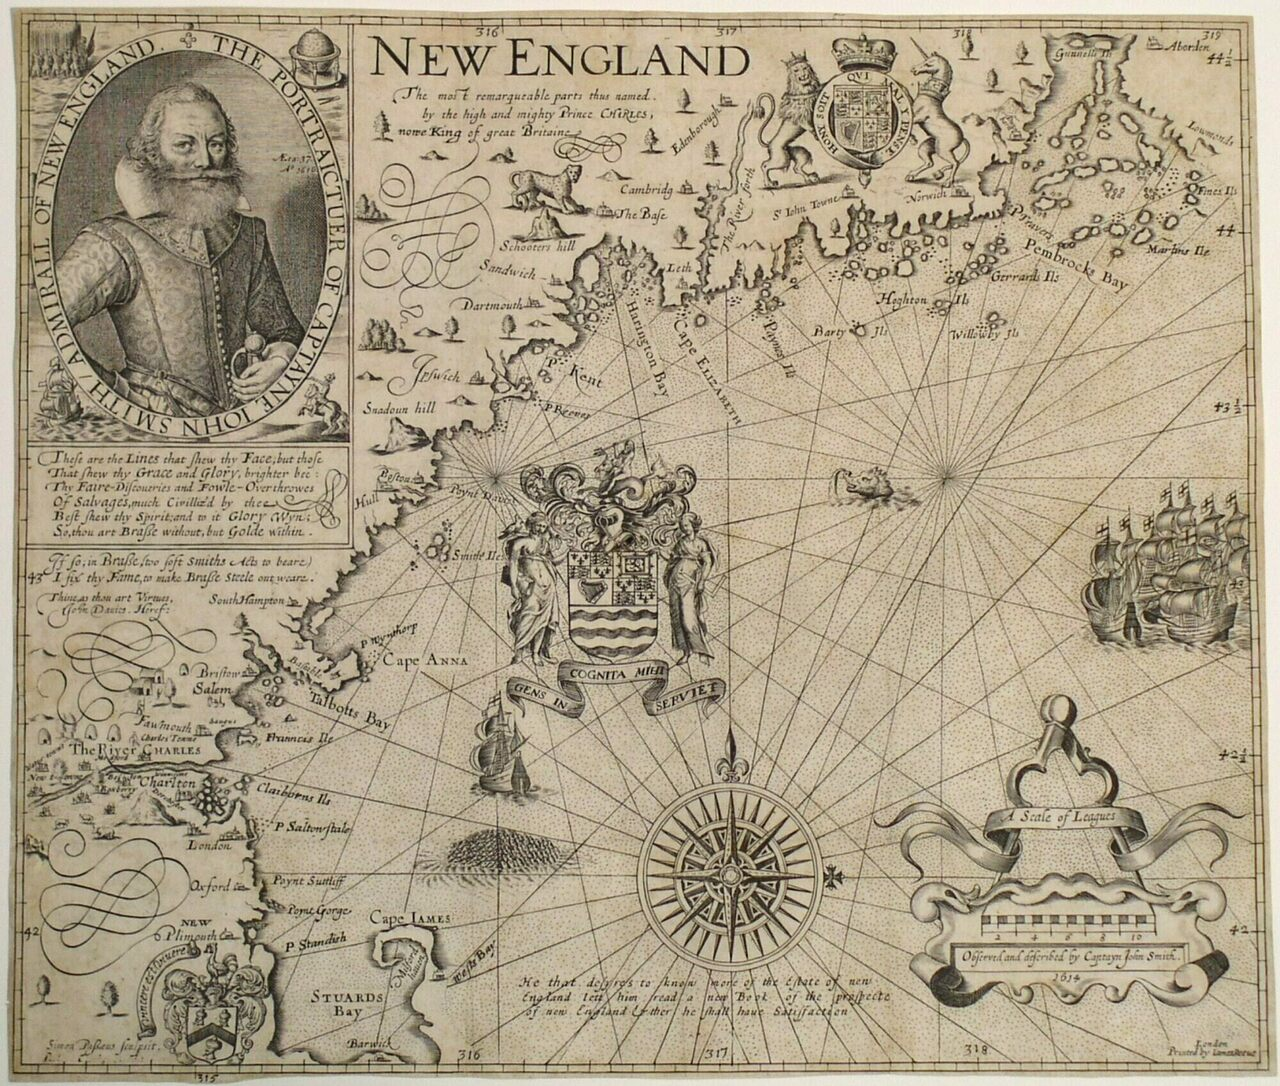 England, But New: How John Smith's 1616 Map Helped Define America